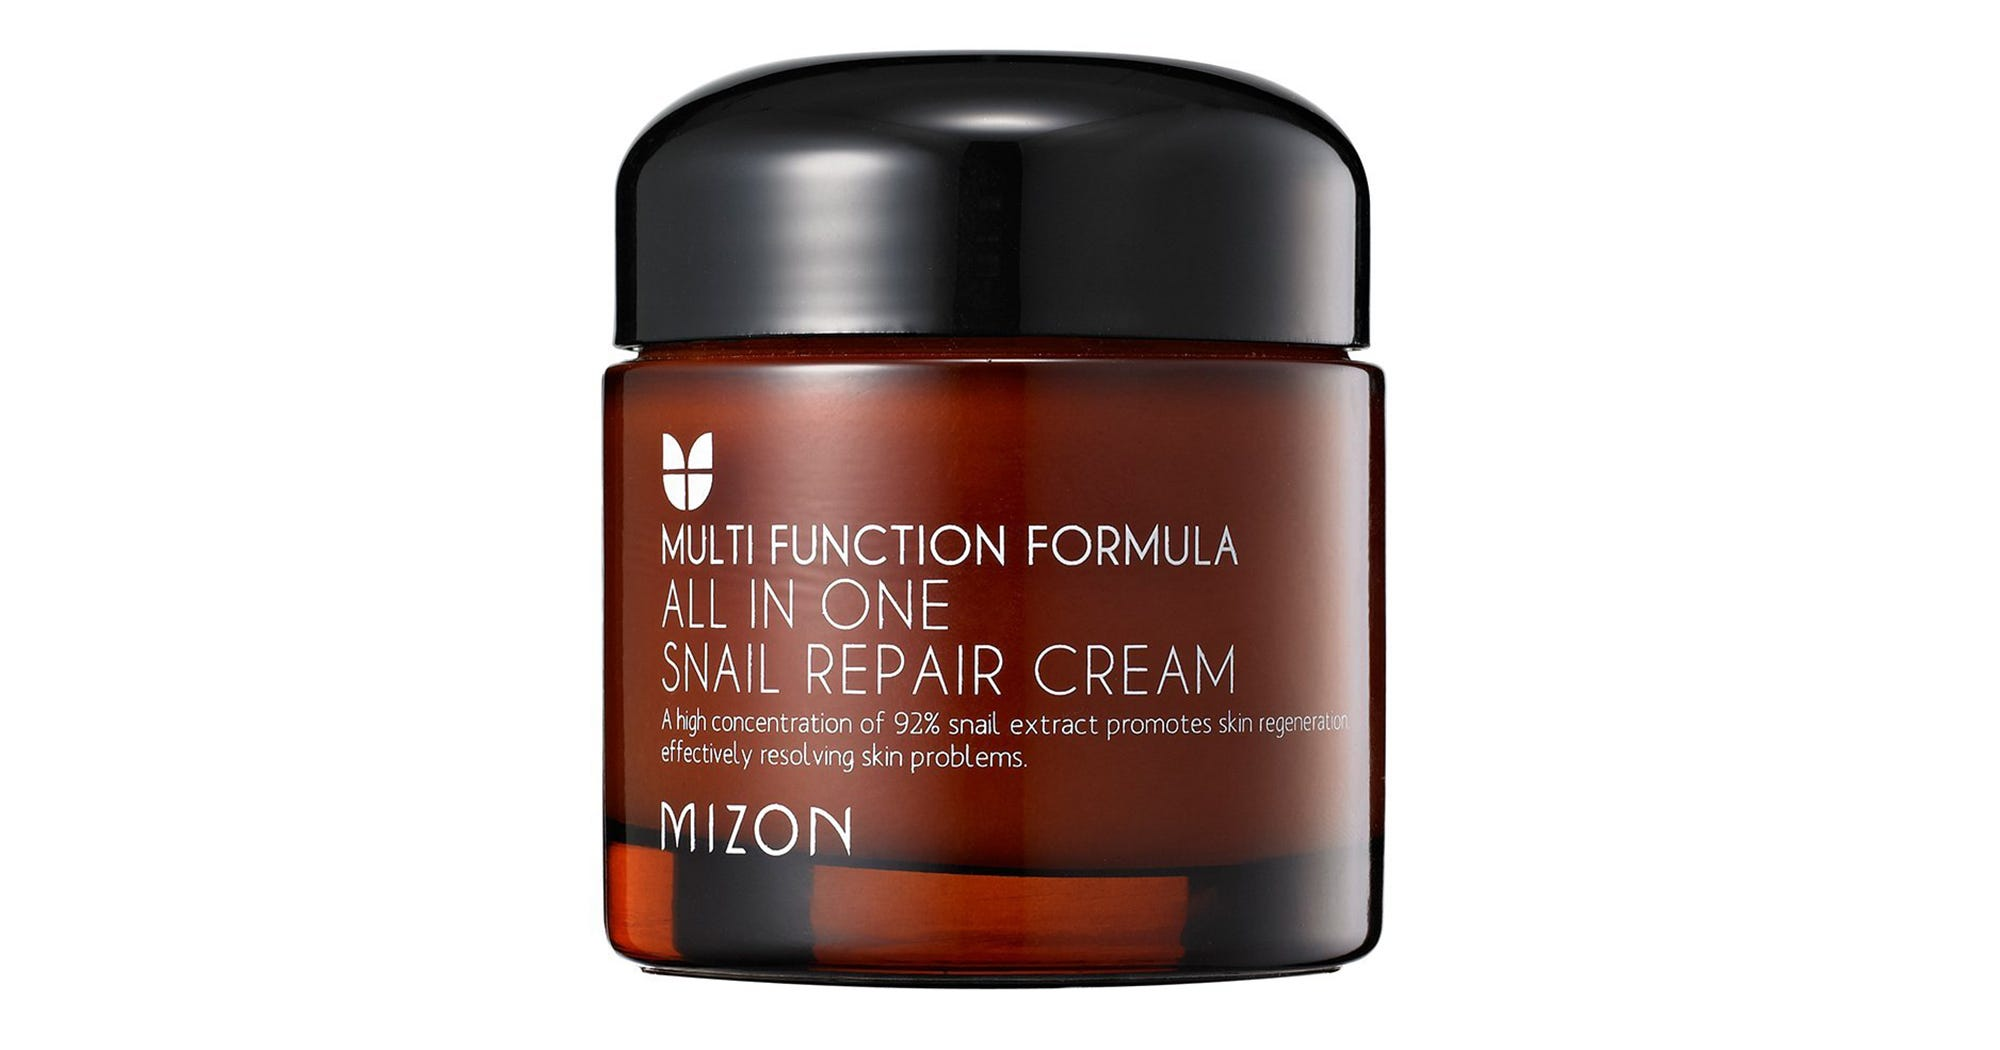 Mizon Snail Repair Cream Is Great For Acne Scars